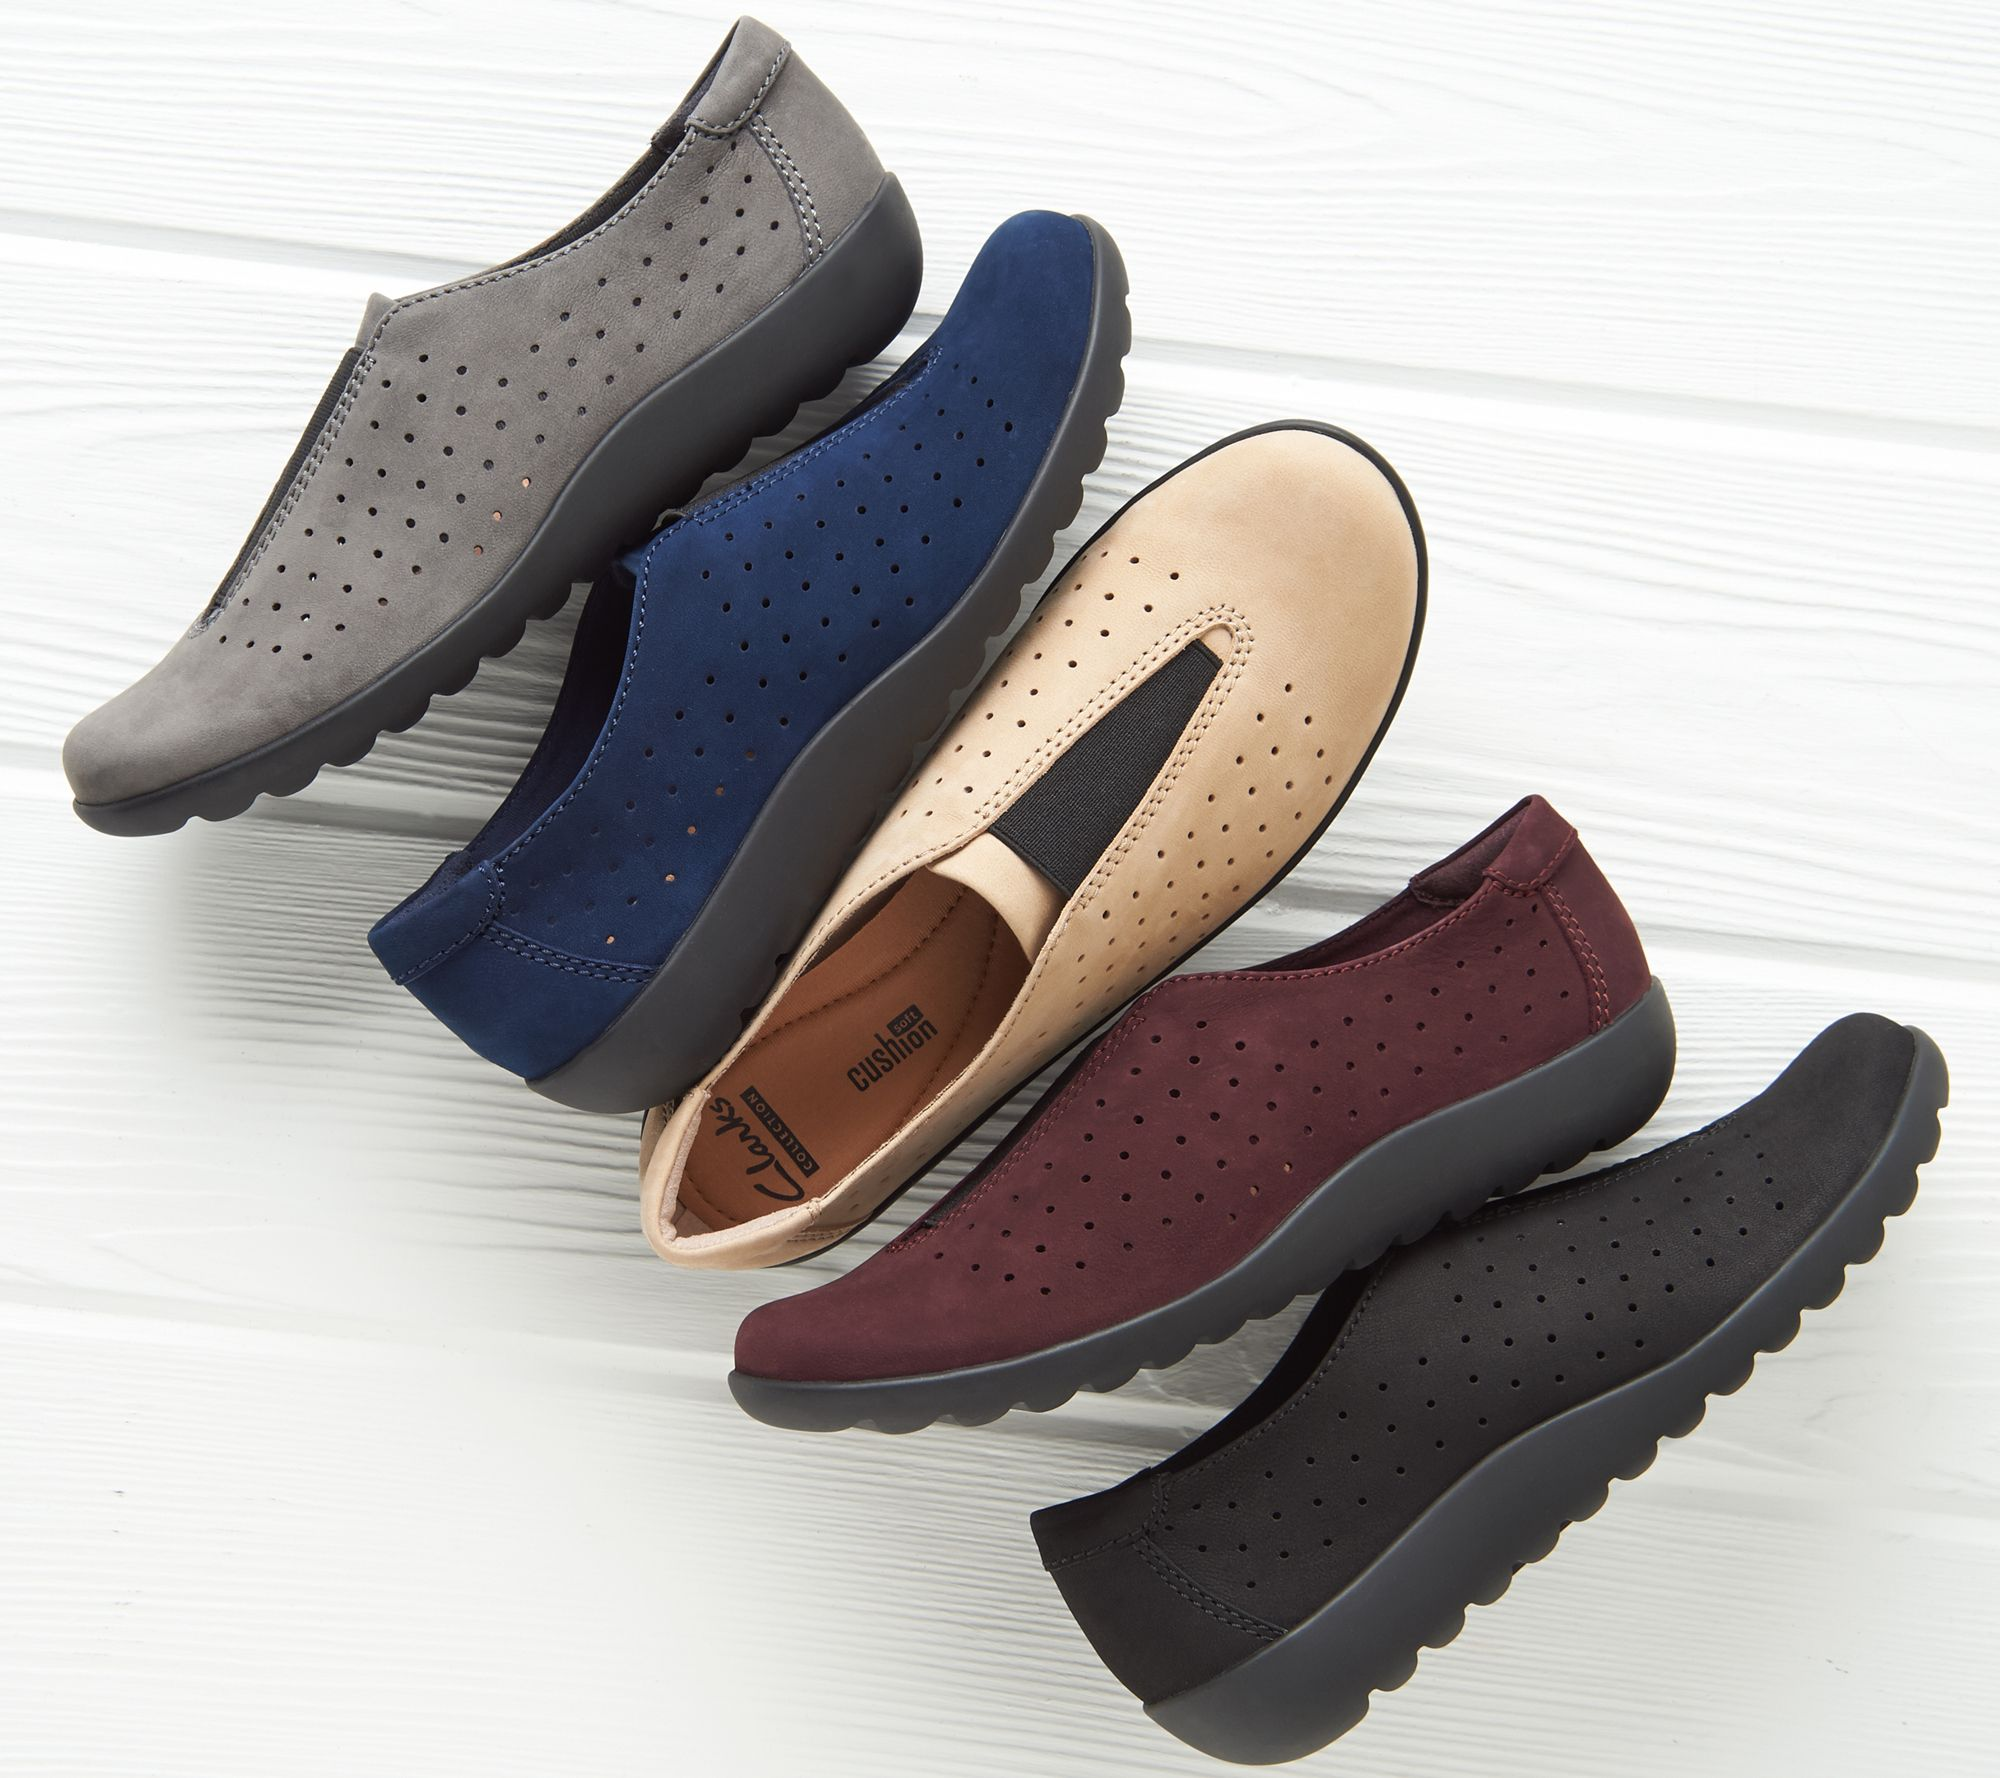 Clarks Perforated Nubuck Leather Slip-On Shoes - Medora Gemma - Page 1 —  QVC.com